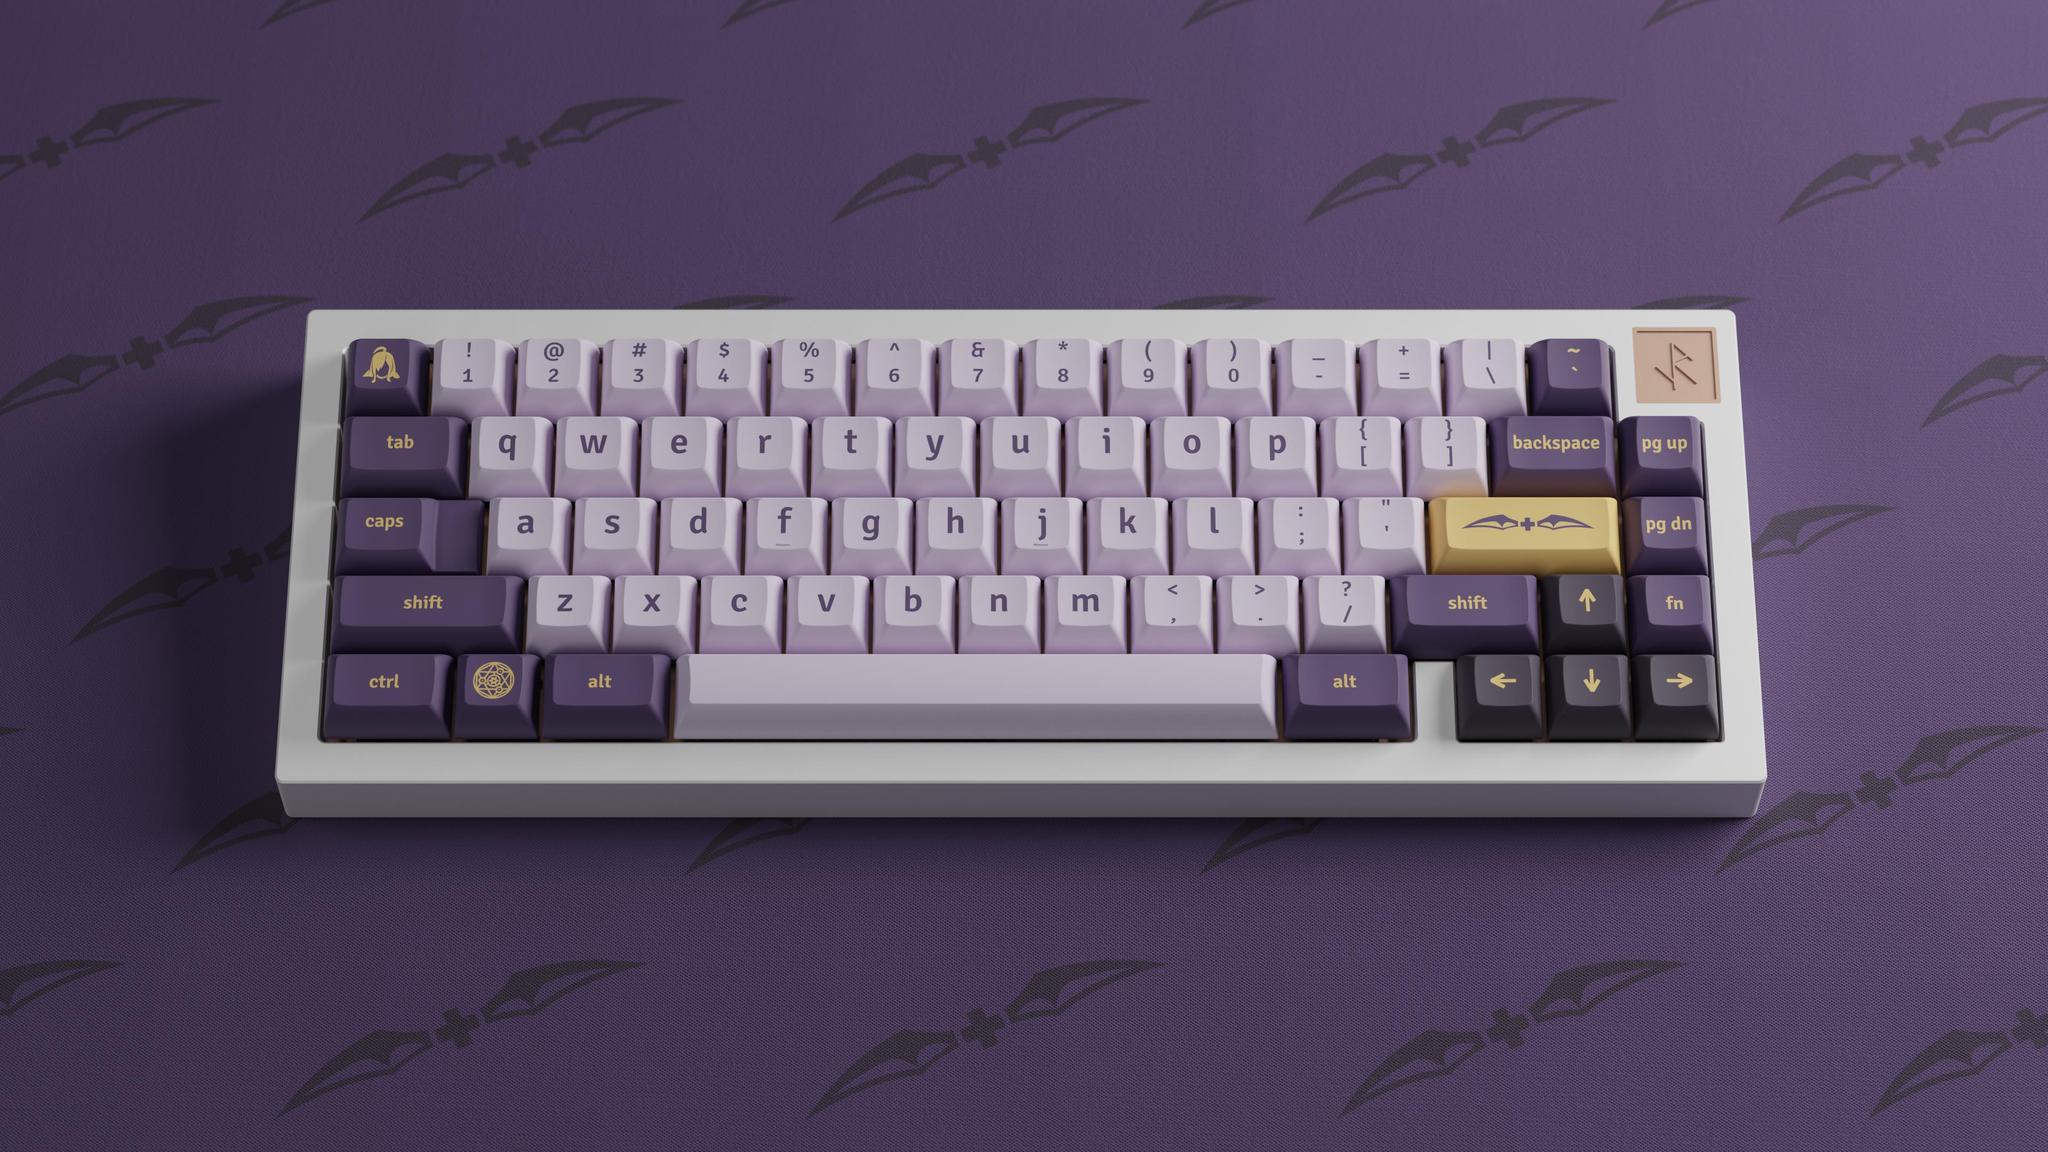 A very elegant render of the KAT Lich keycap set